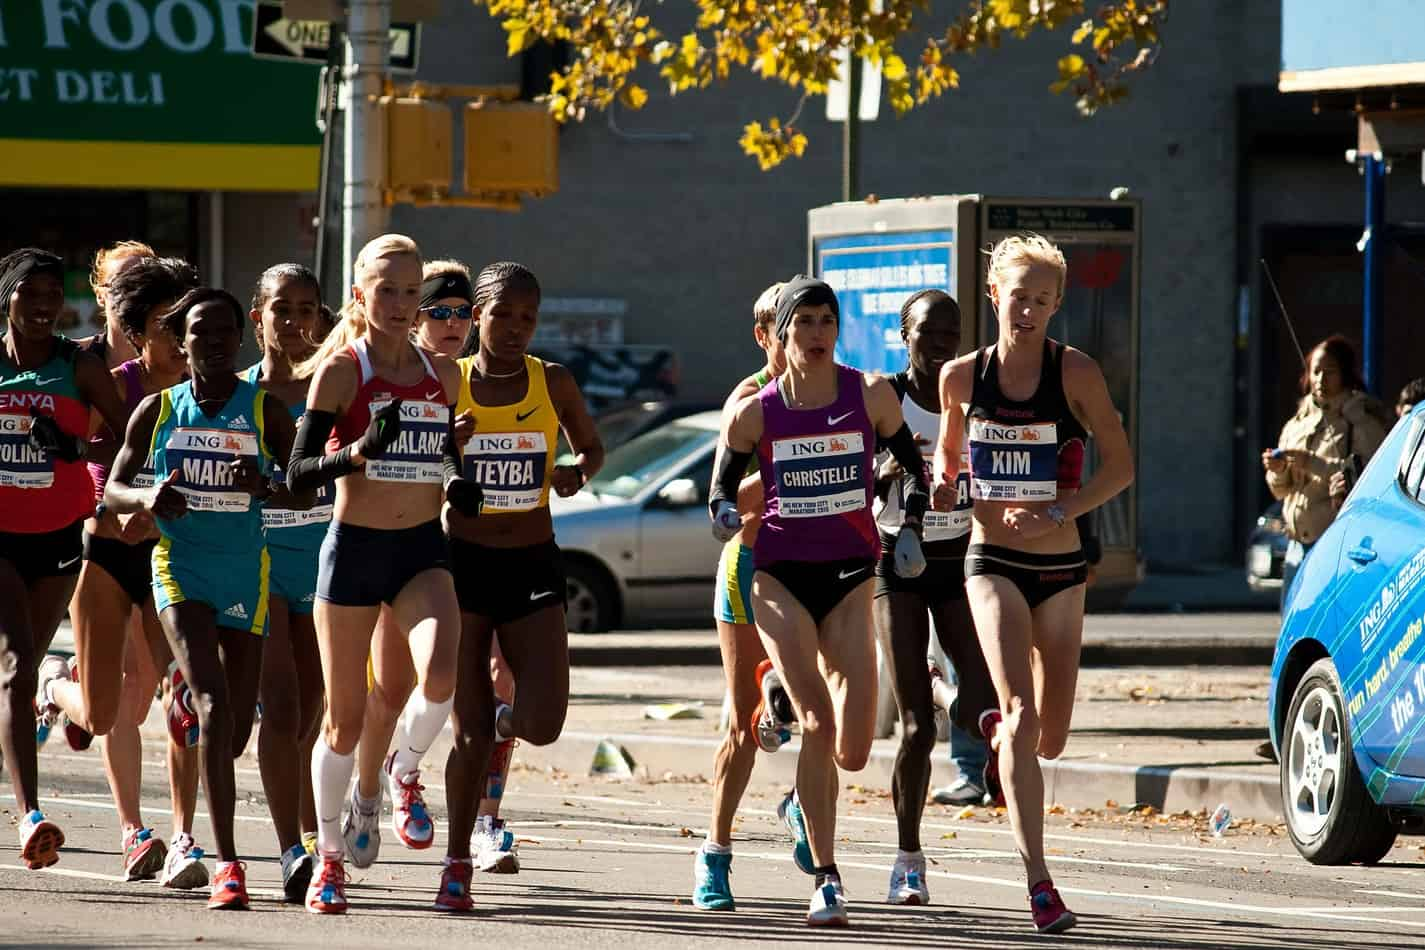 Elite runners that look like they have the best marathon runner's body.